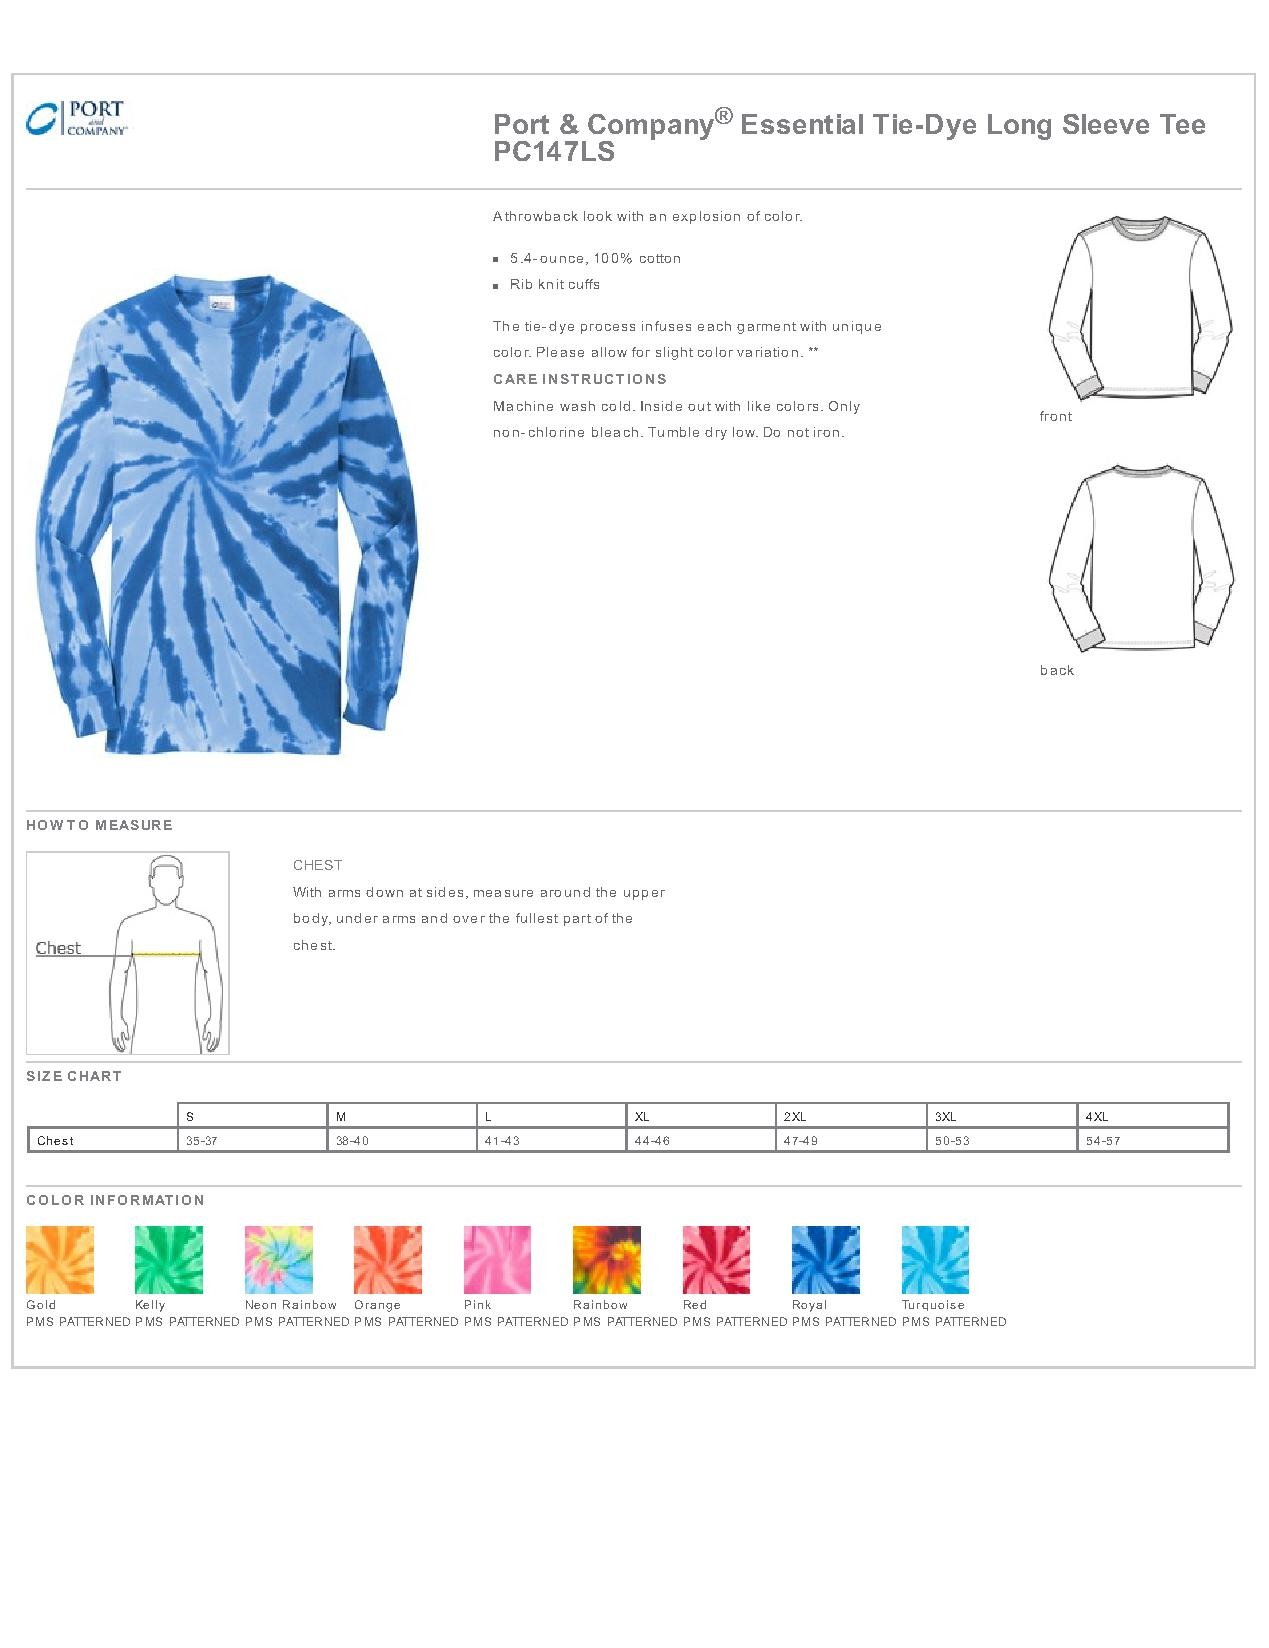 Port company pc147ls essential tie dye long sleeve tee mens specs sizing specs geenschuldenfo Image collections